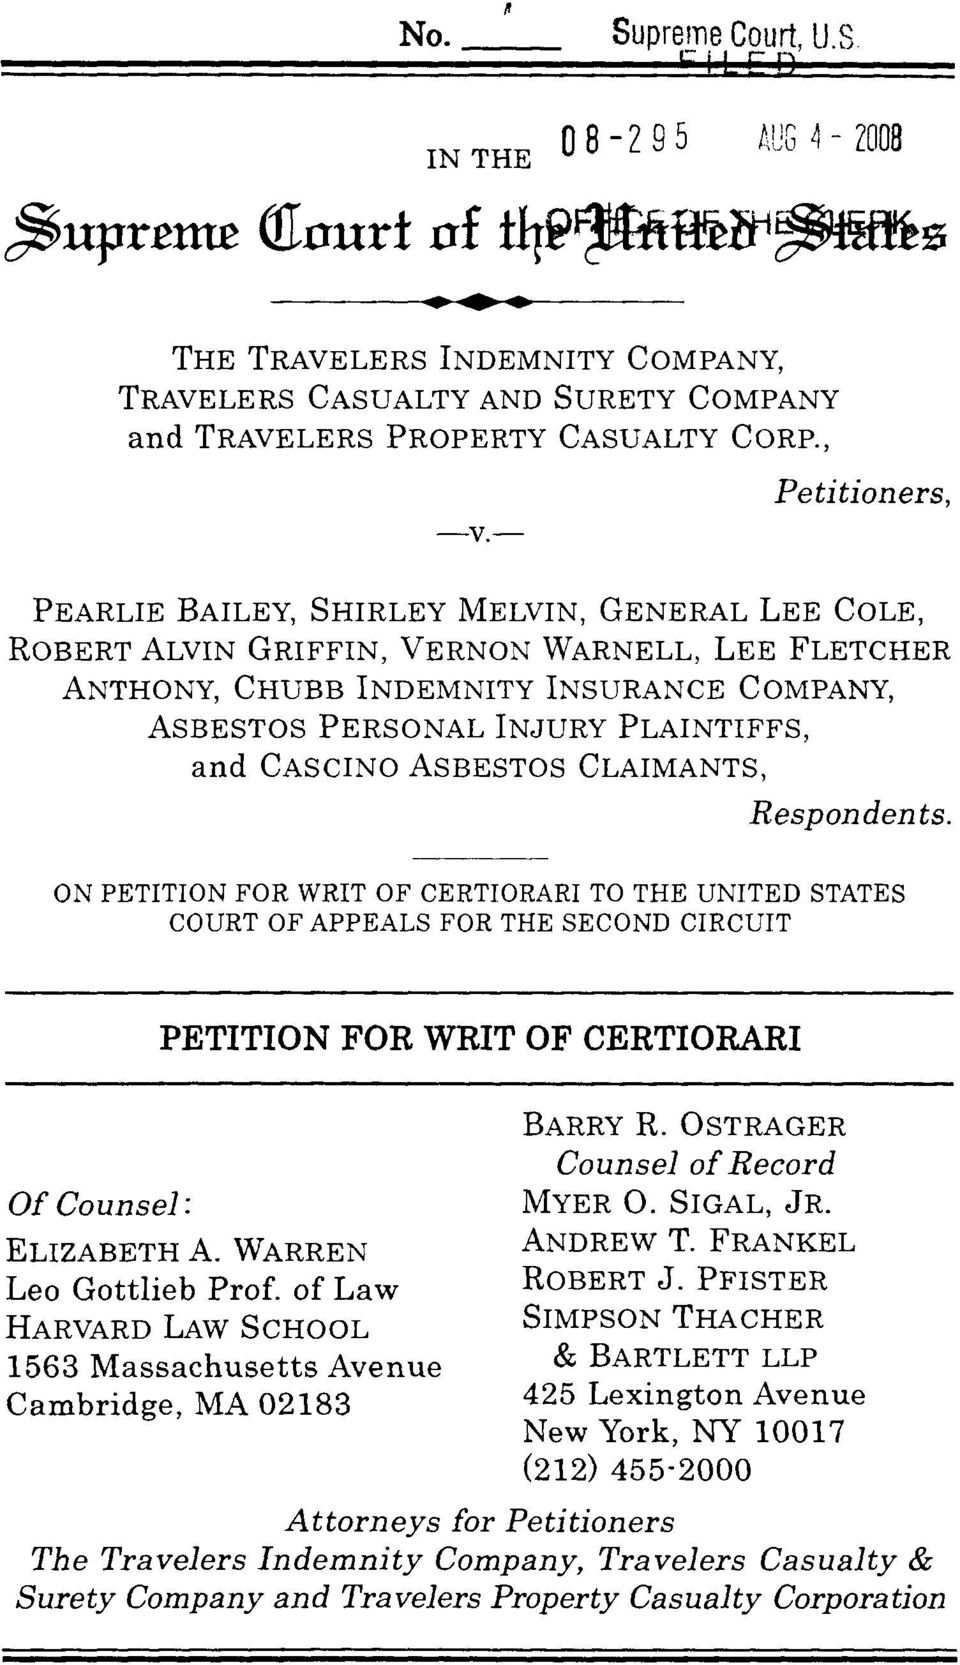 and CASCINO ASBESTOS CLAIMANTS, Respondents. ON PETITION FOR WRIT OF CERTIORARI TO THE UNITED STATES COURT OF APPEALS FOR THE SECOND CIRCUIT PETITION FOR WRIT OF CERTIORARI Of Counsel : ELIZABETH A.